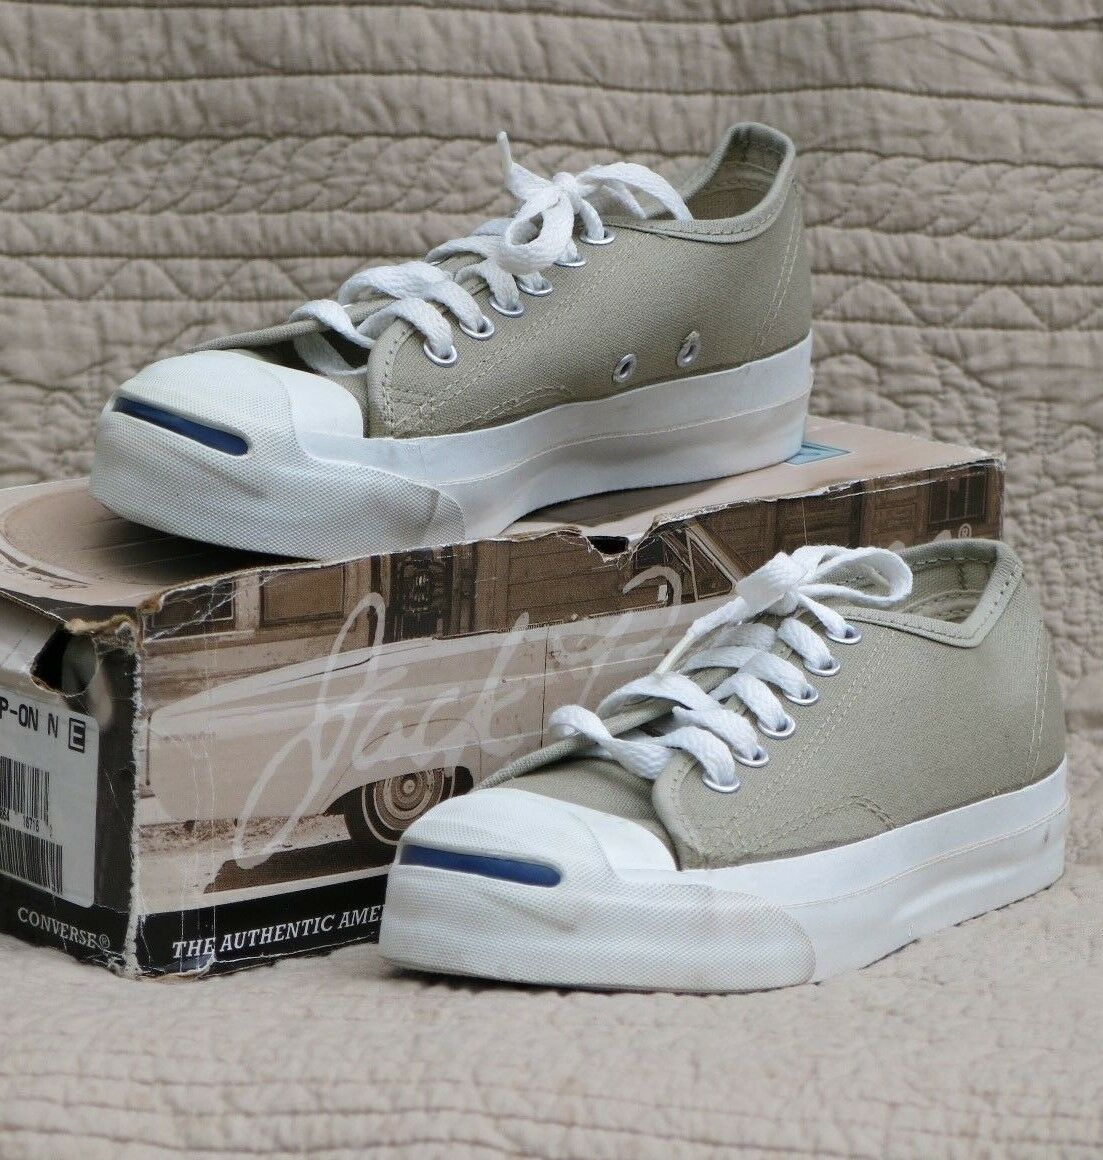 Converse Jack Purcell Tennis shoes Made U.S,A, New Old Stock Men s 4.5 Beige